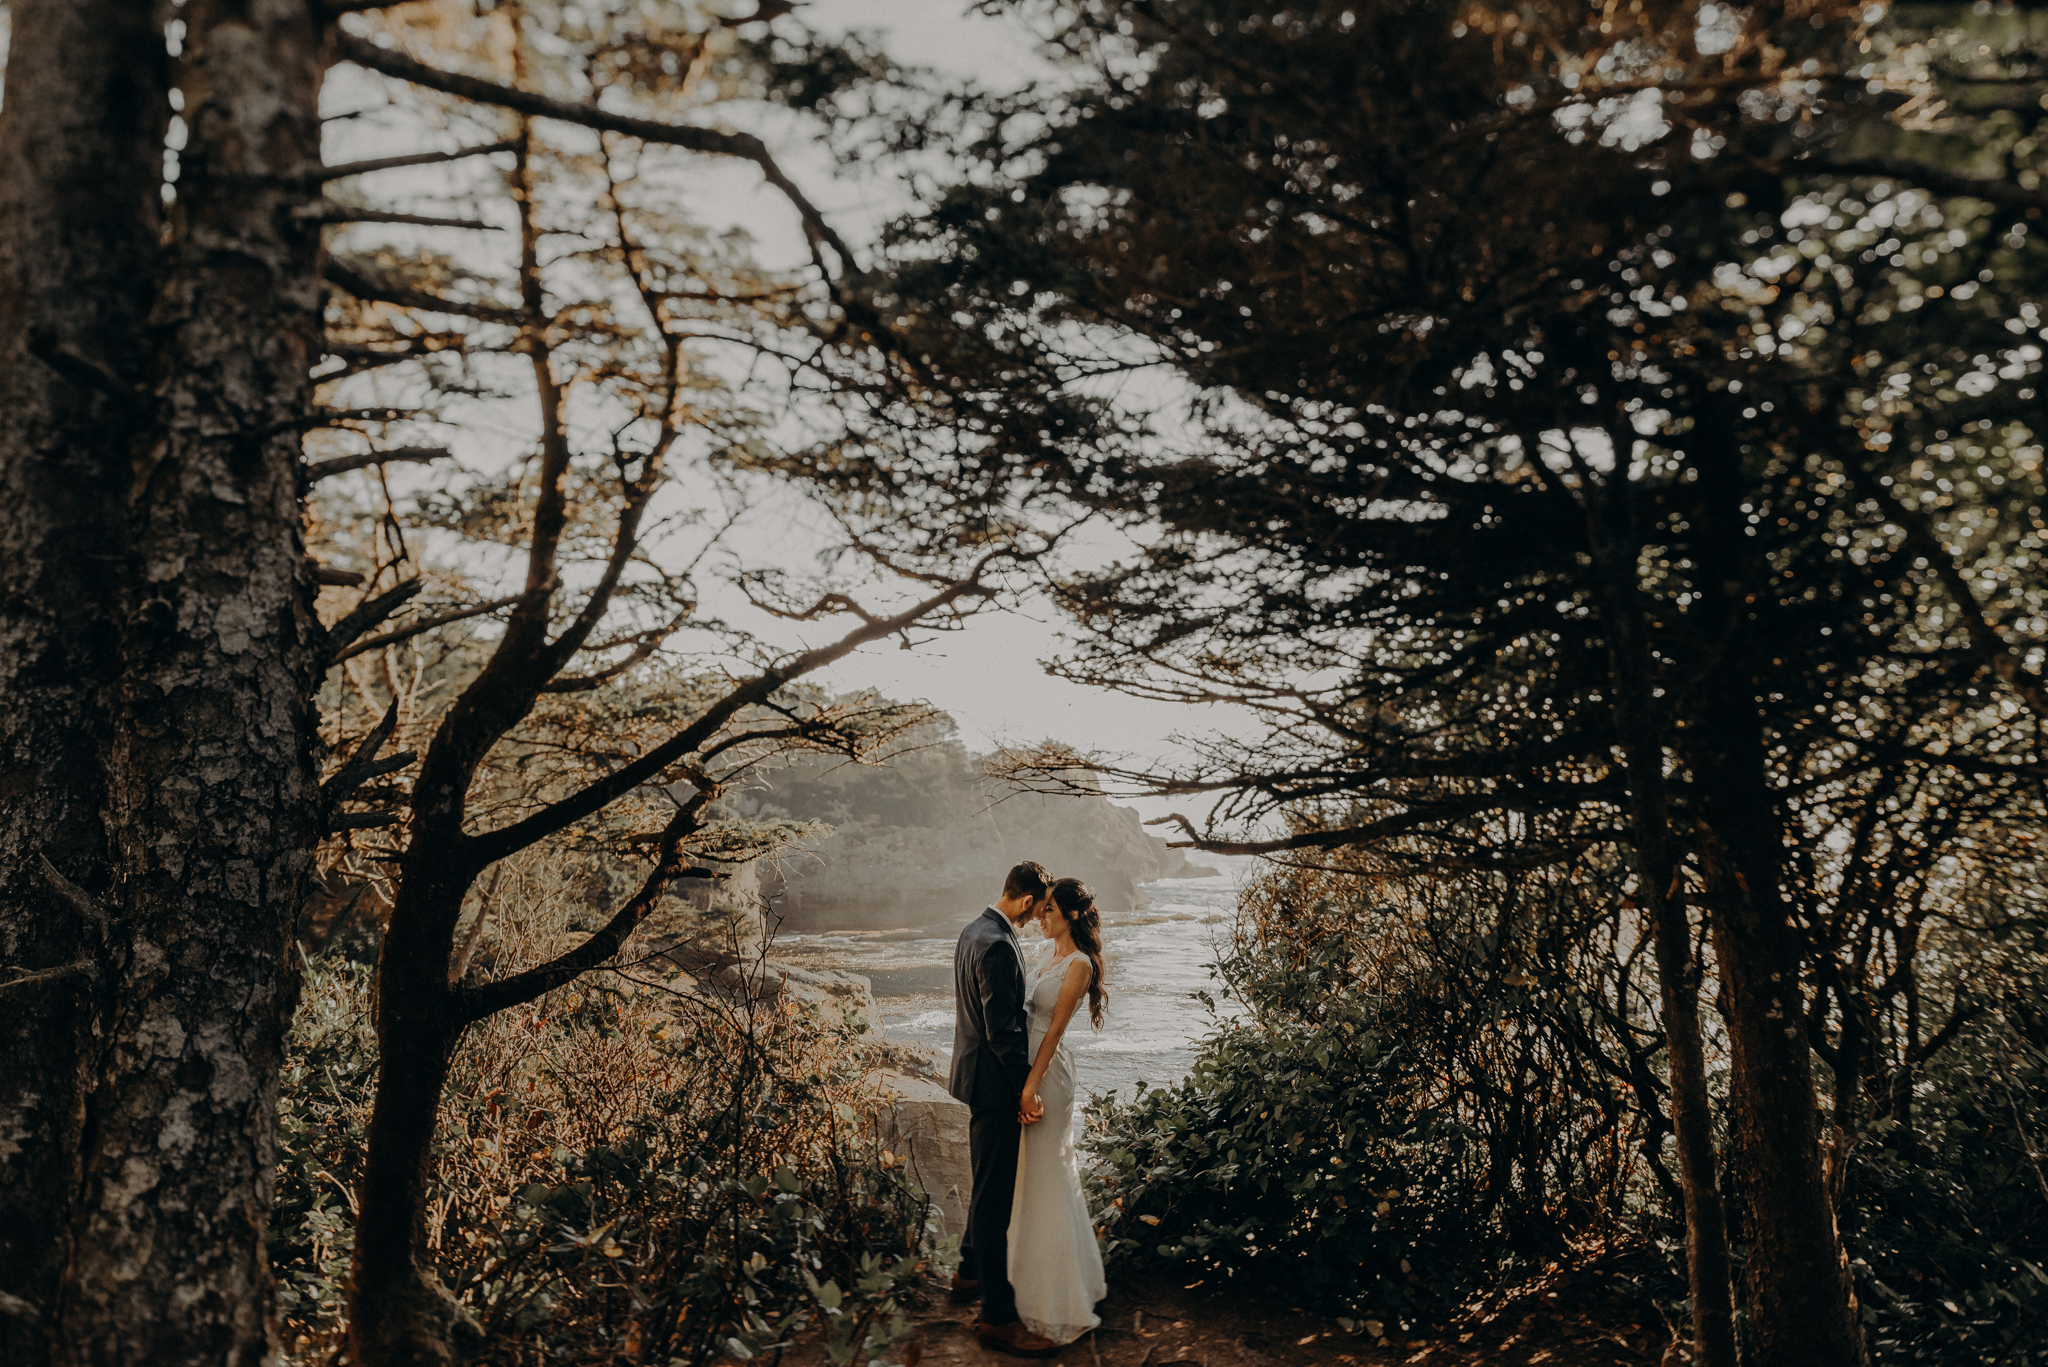 Isaiah + Taylor Photography - Cape Flattery Elopement, Olympia National Forest Wedding Photographer-081.jpg